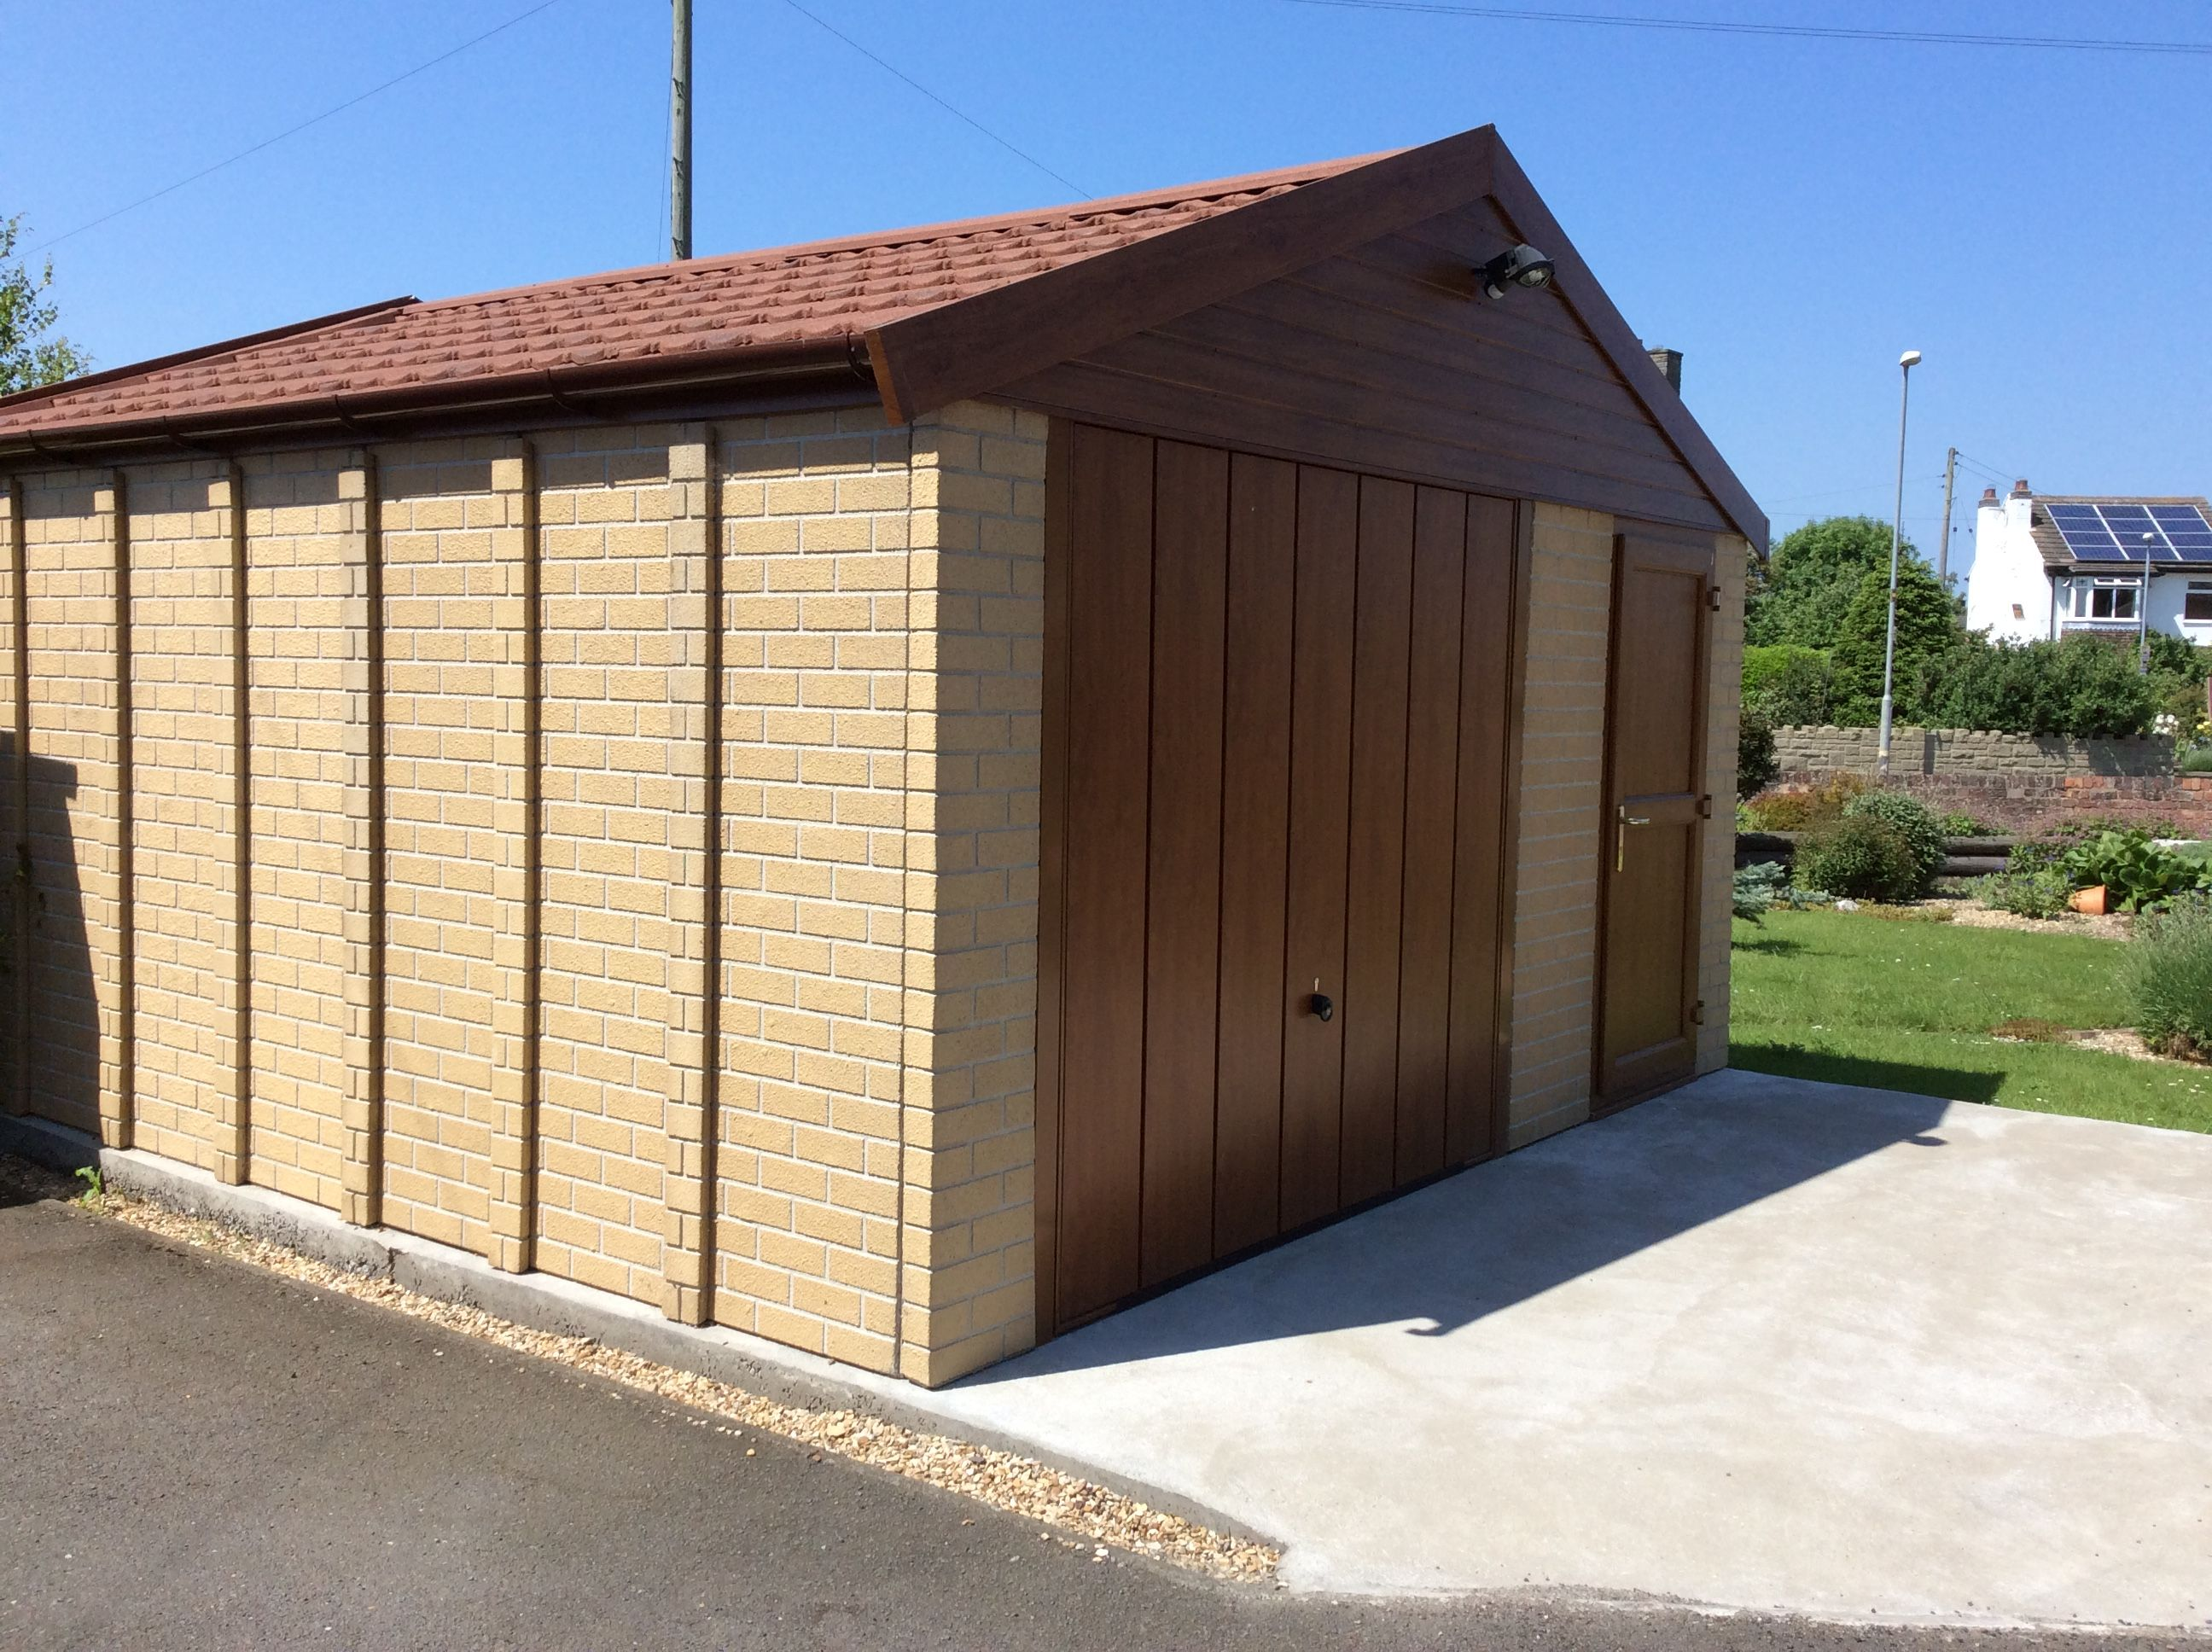 storage and garage prefabricated can car prefab of them is parking are garages available the assorted designs your one needs how fulfill